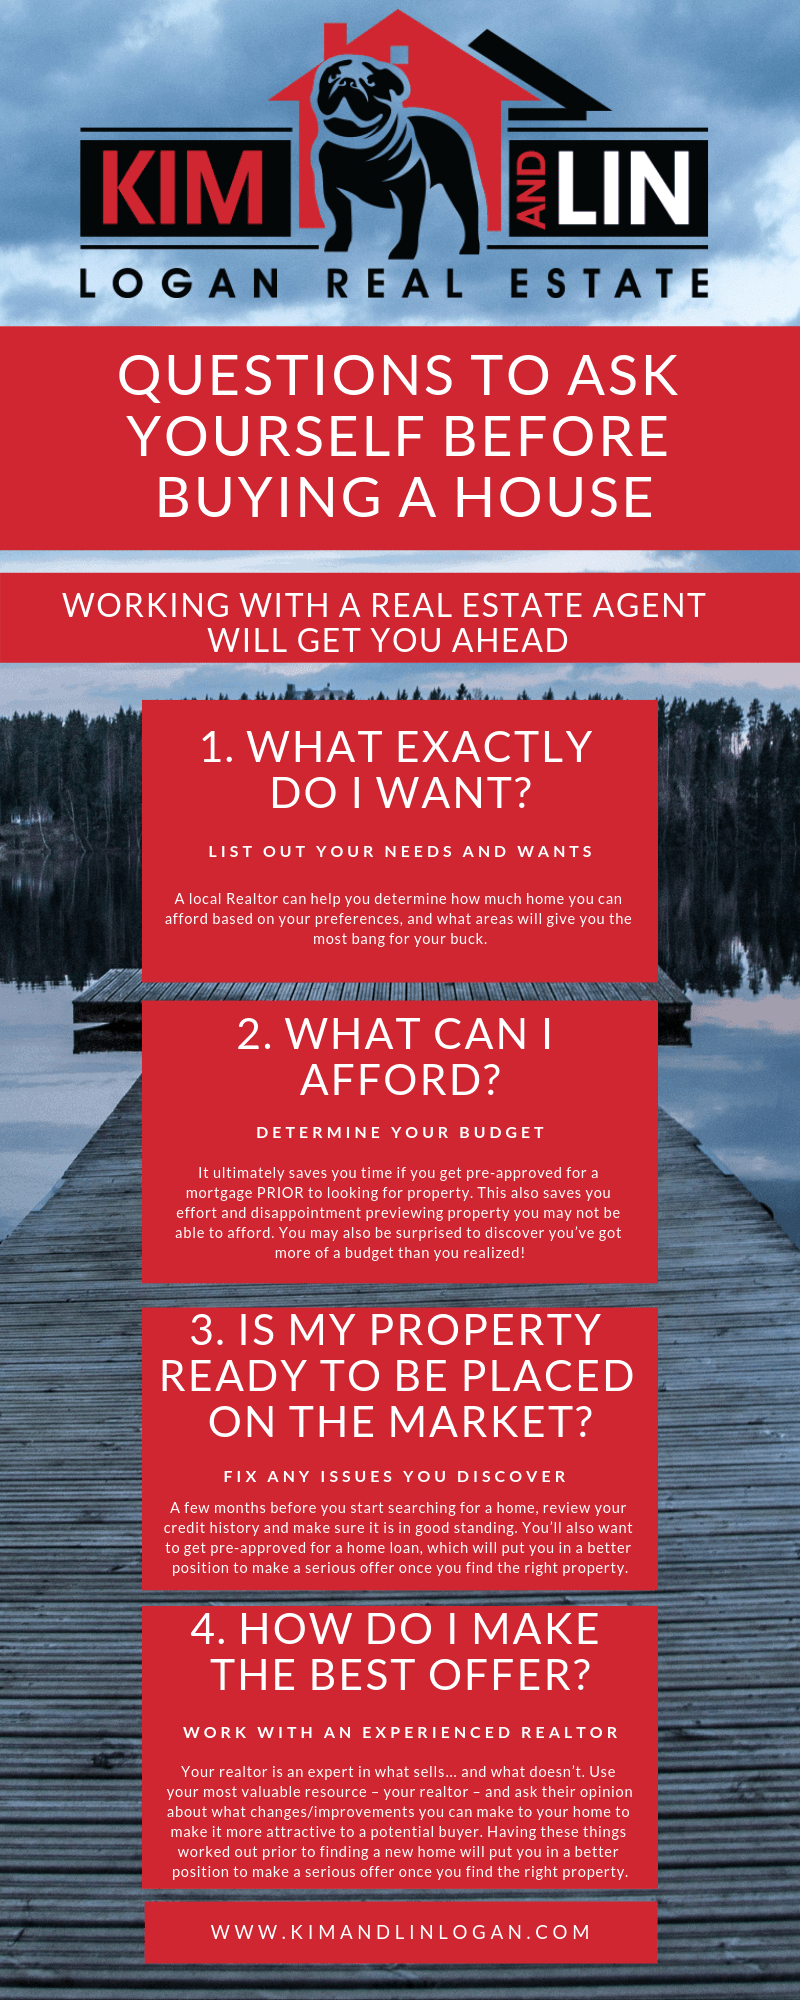 Ask Yourself Before Buying a House